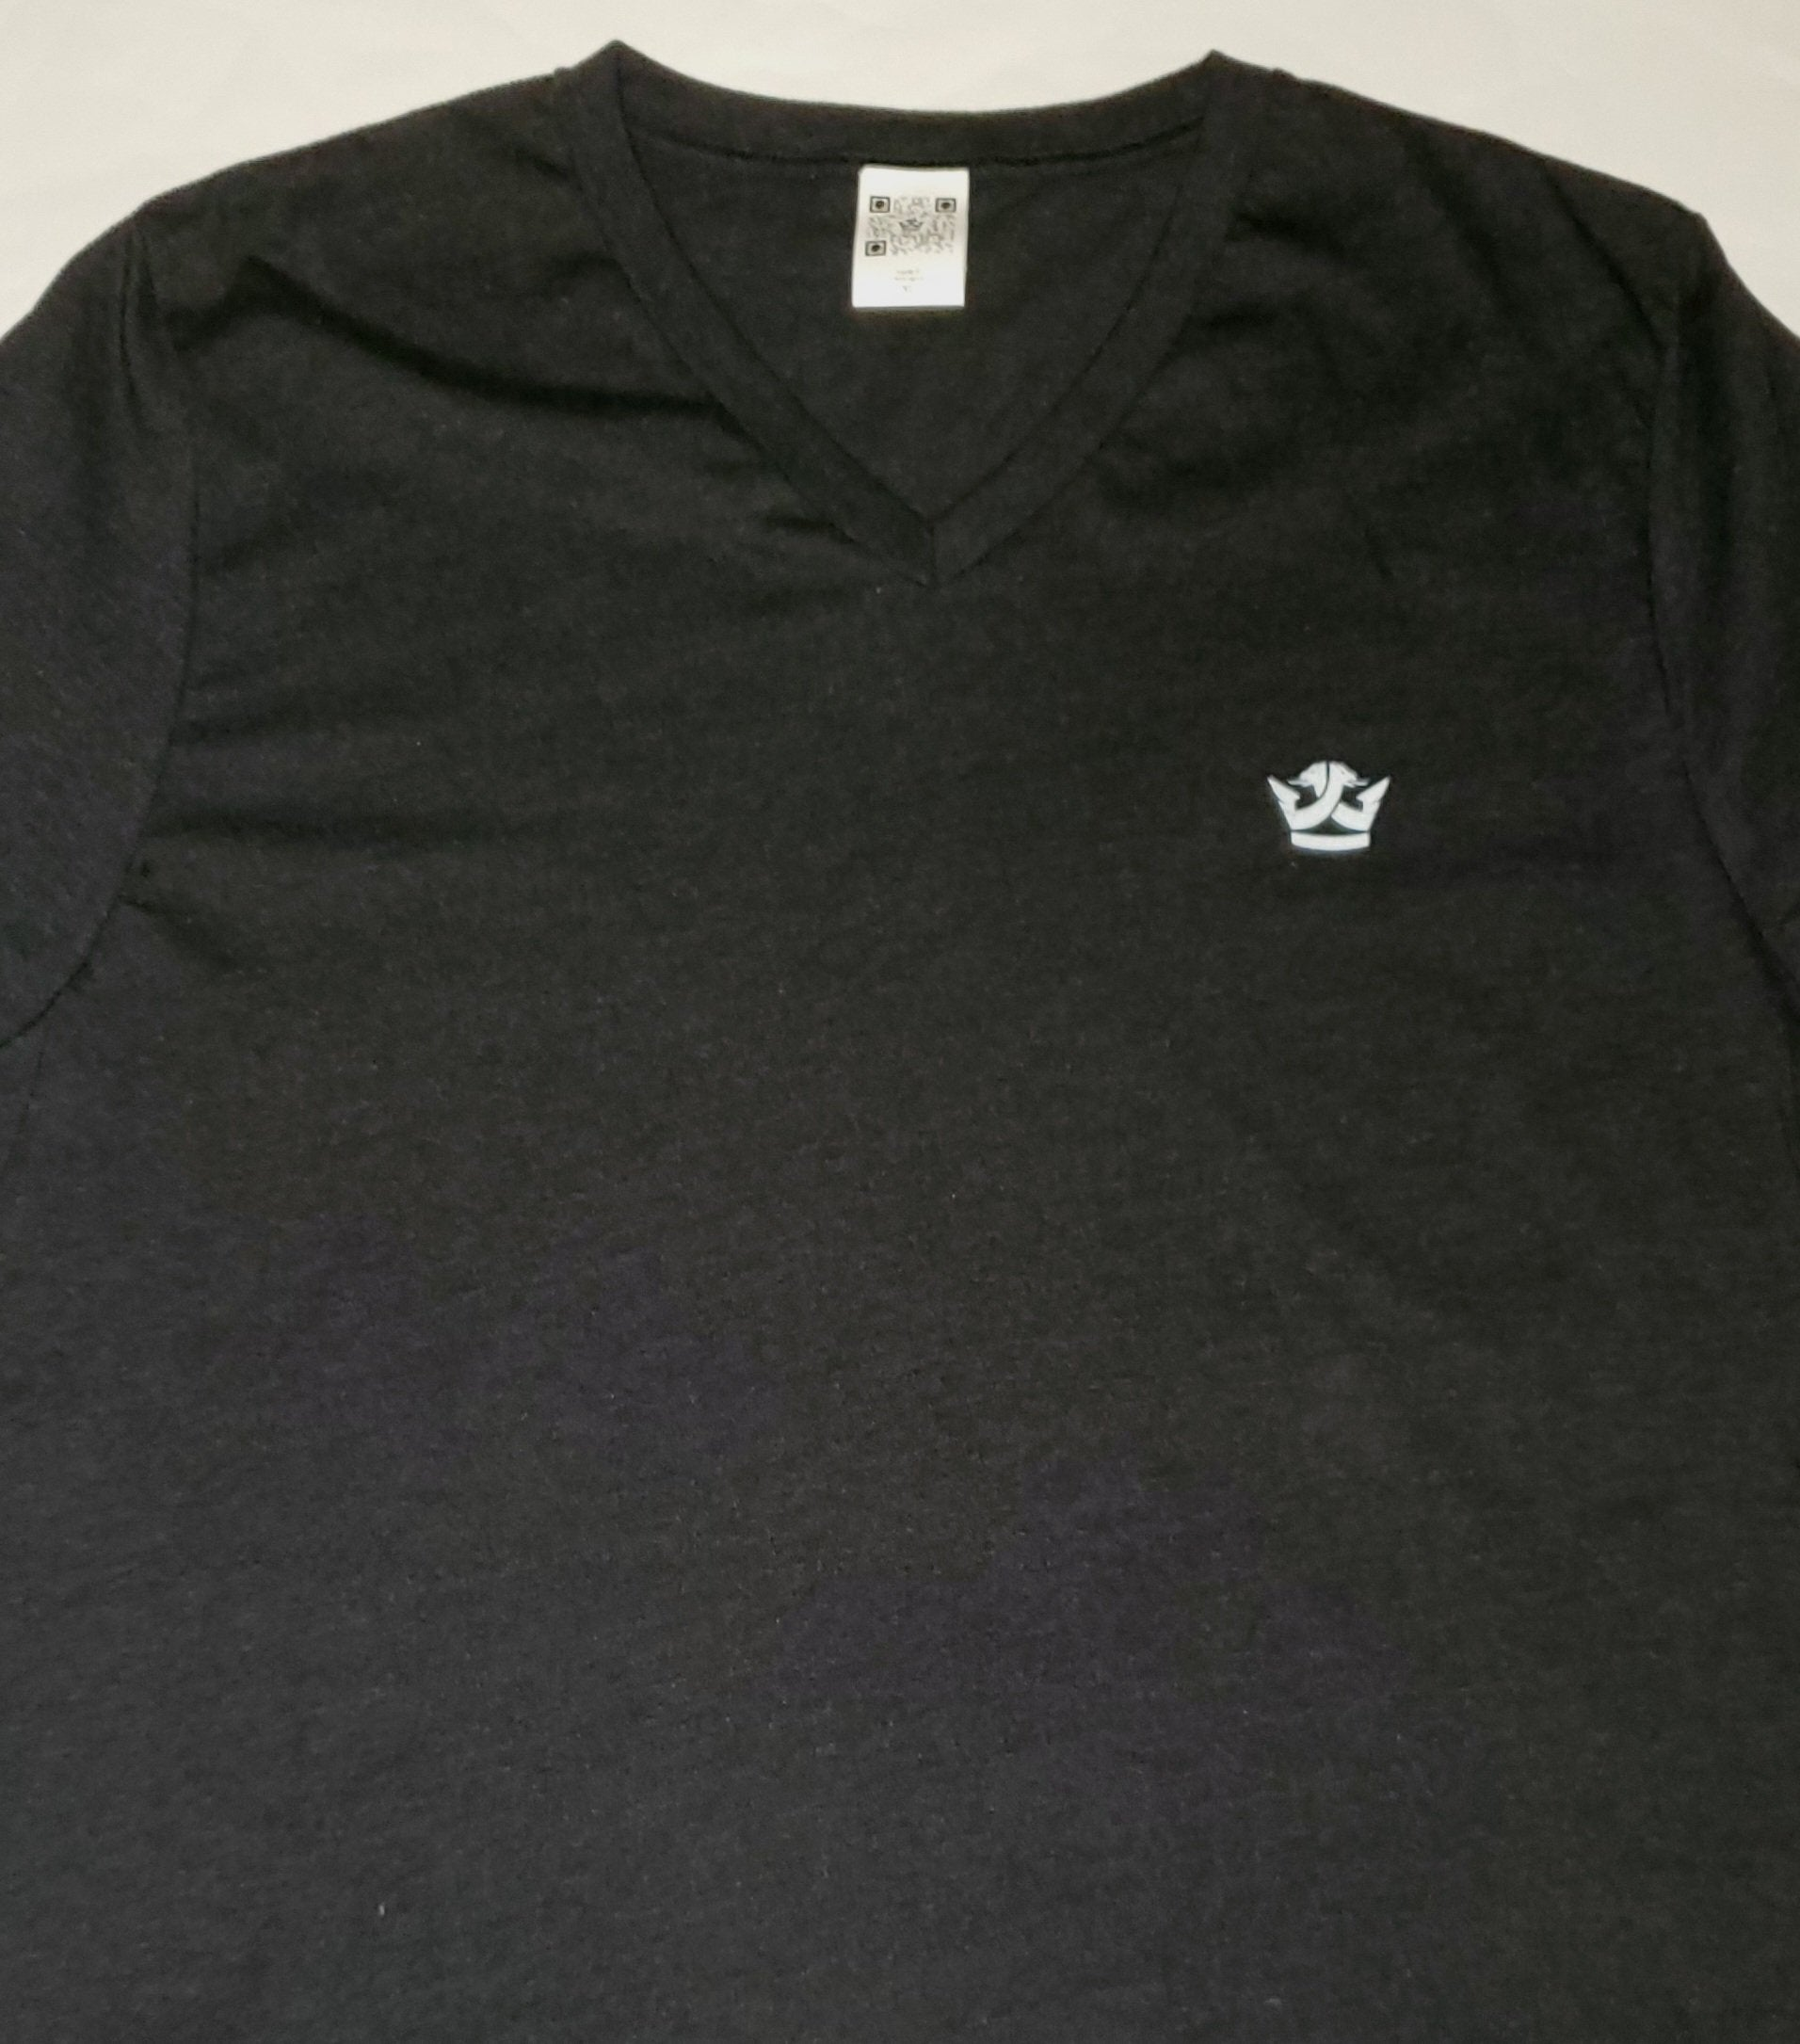 v neck black-white logo